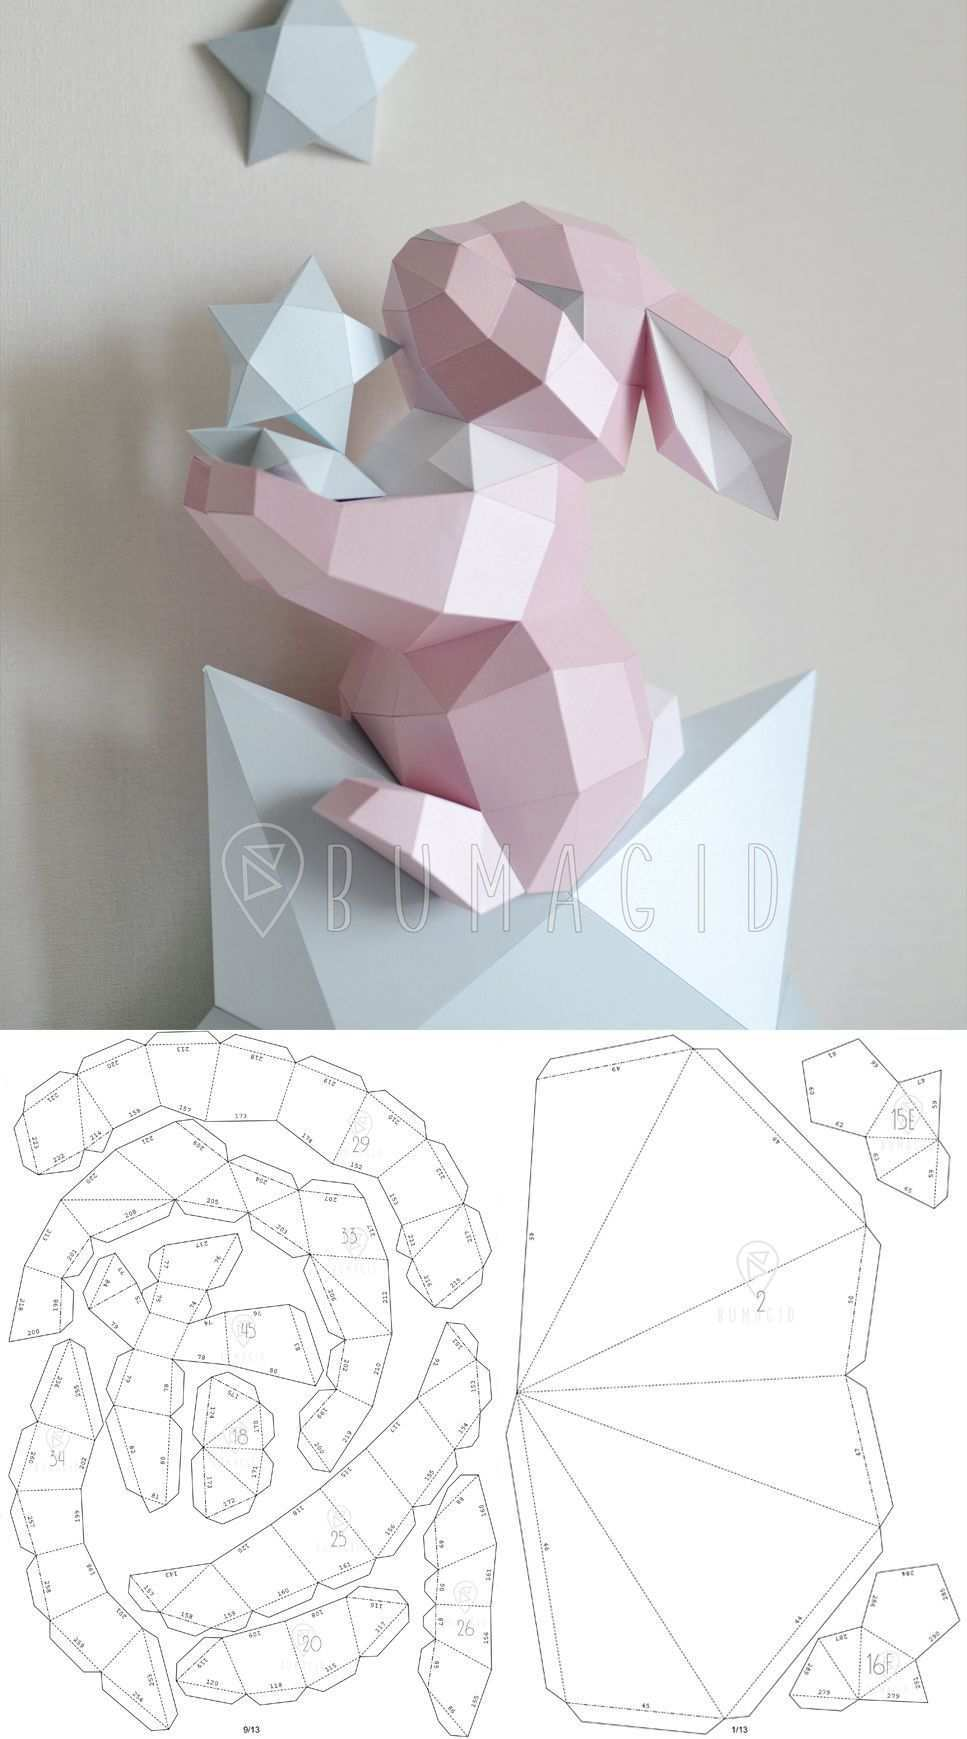 Pdf Template Bunny On A Star Low Poly Fawn Model Origami Papercraft Pepakura 3d Paper Paper Crafts Origami Paper Crafts Diy Origami Crafts